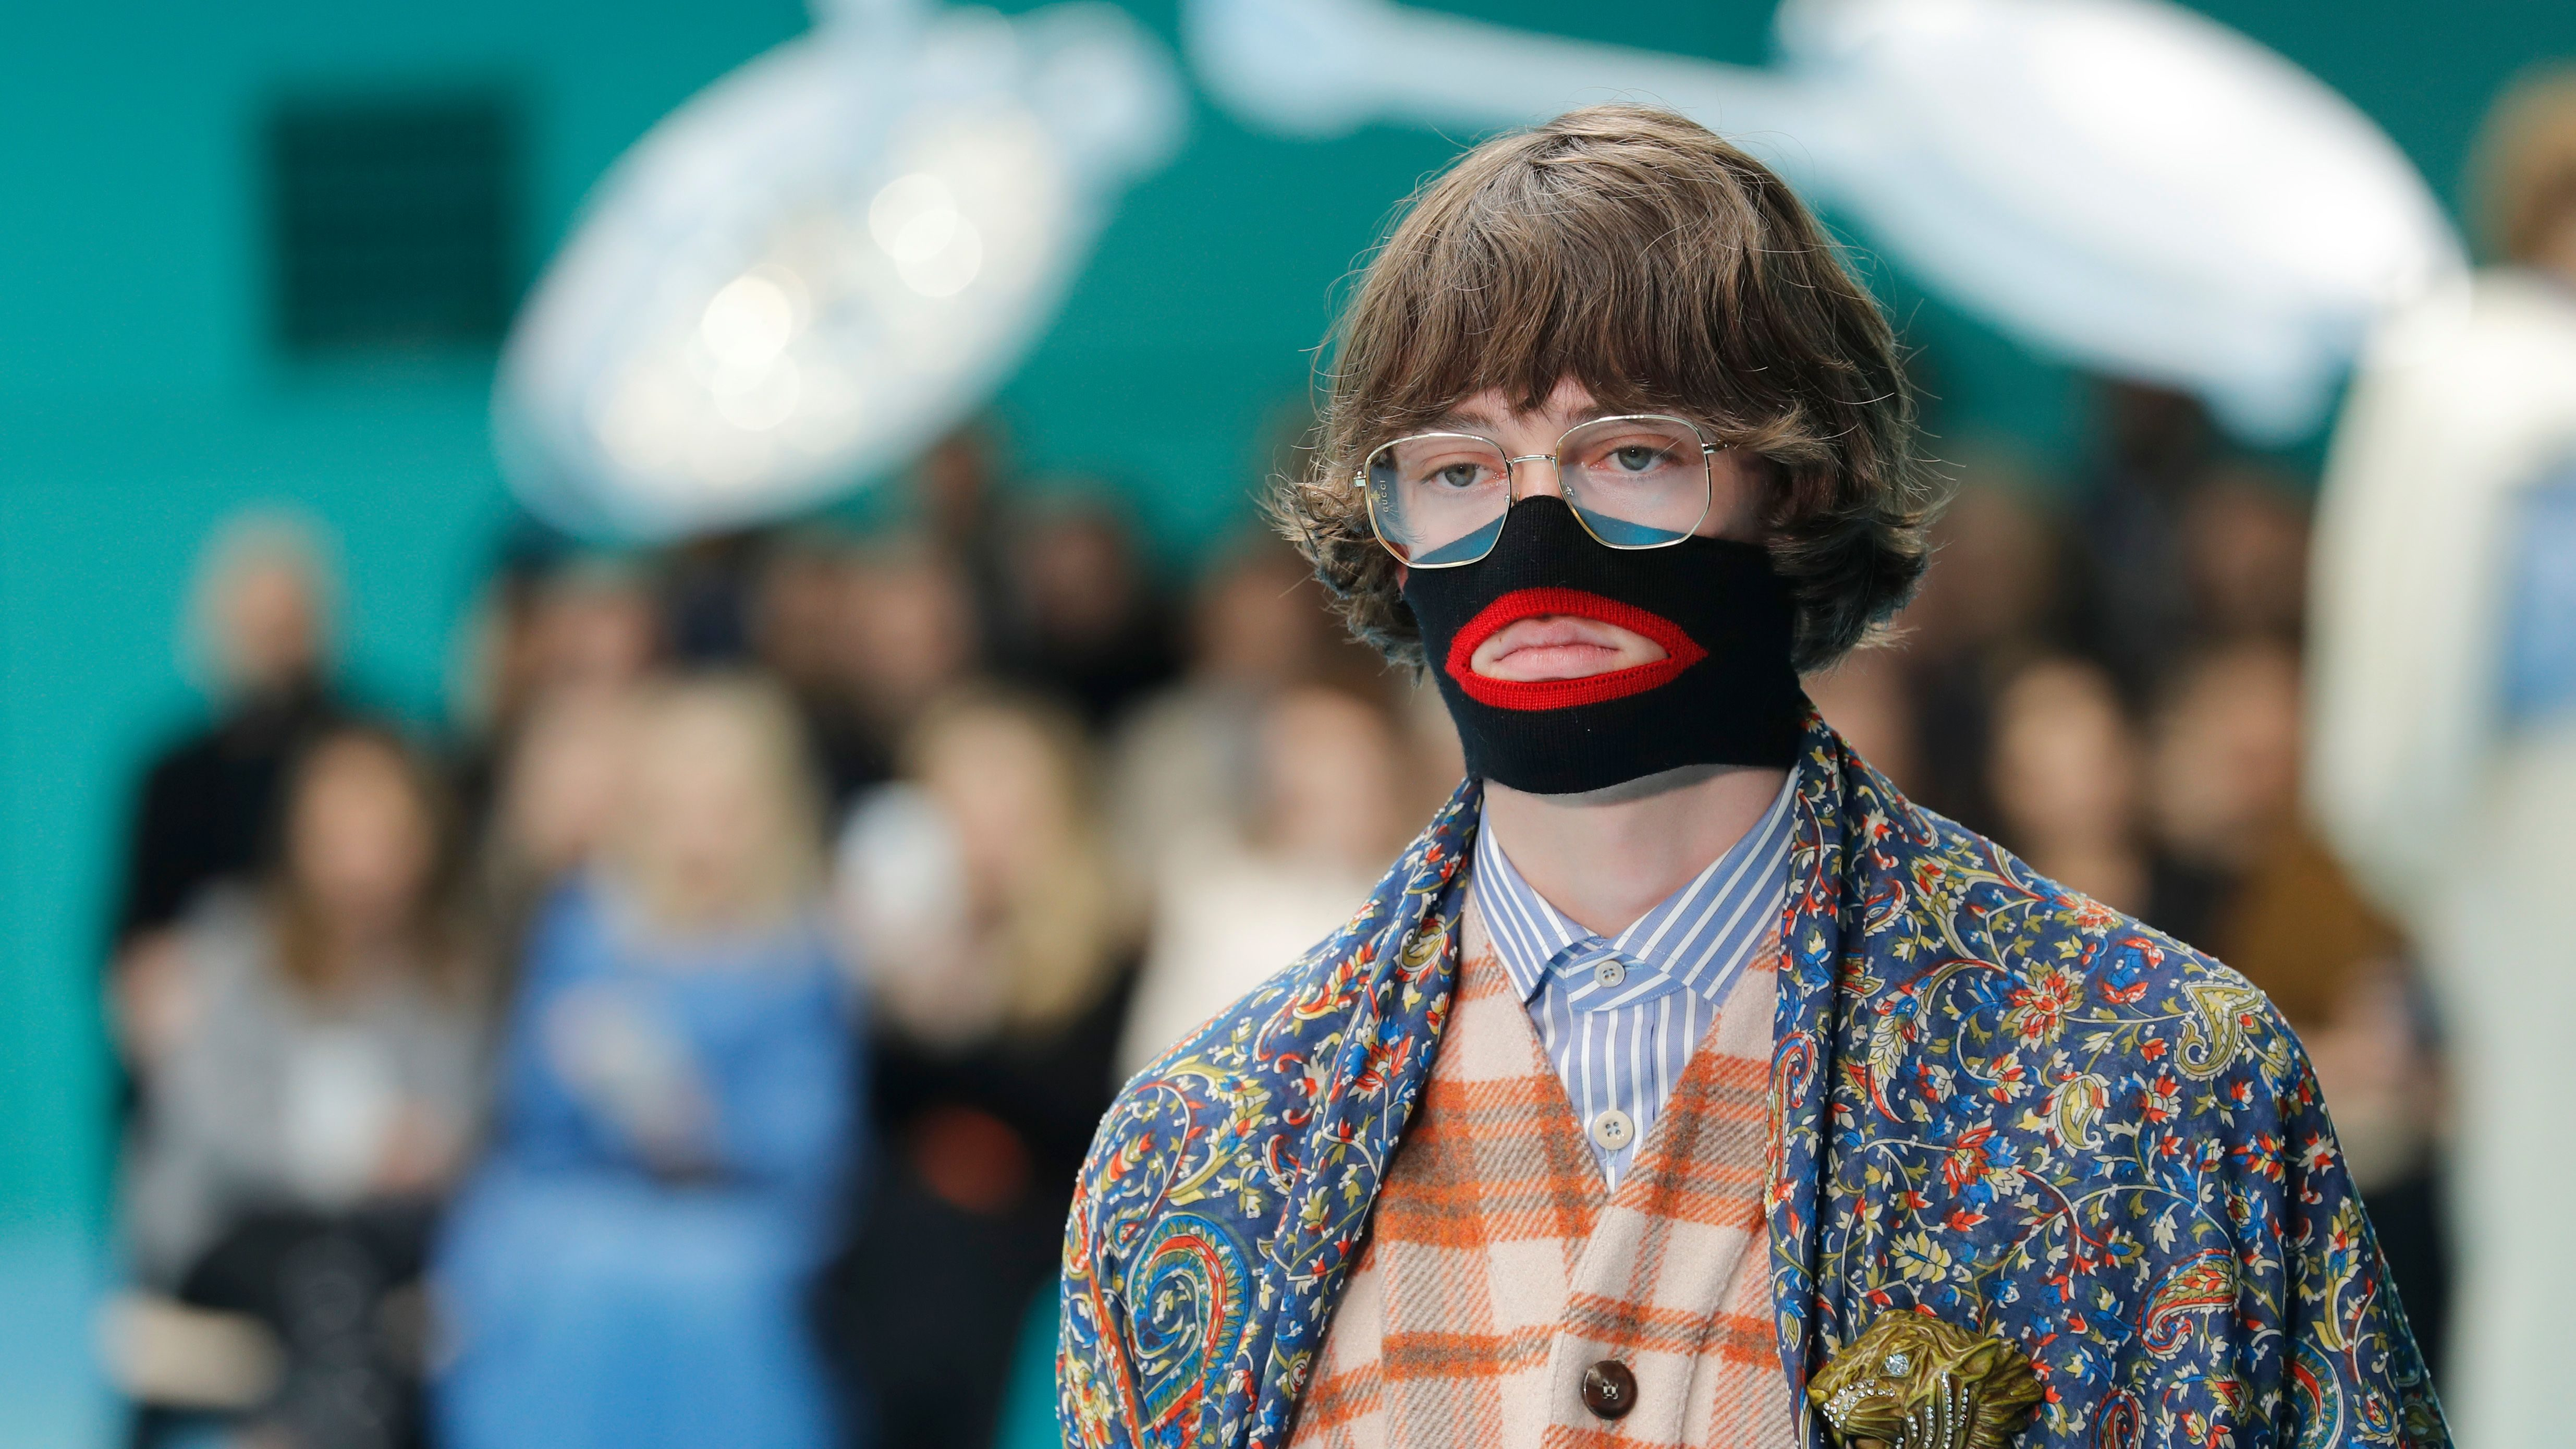 A model wears a creation as part of the Gucci women's Fall/Winter 2018-2019 collection, presented during the Milan Fashion Week, in Milan, Italy, Wednesday, Feb. 21, 2018. (AP Photo/Antonio Calanni)